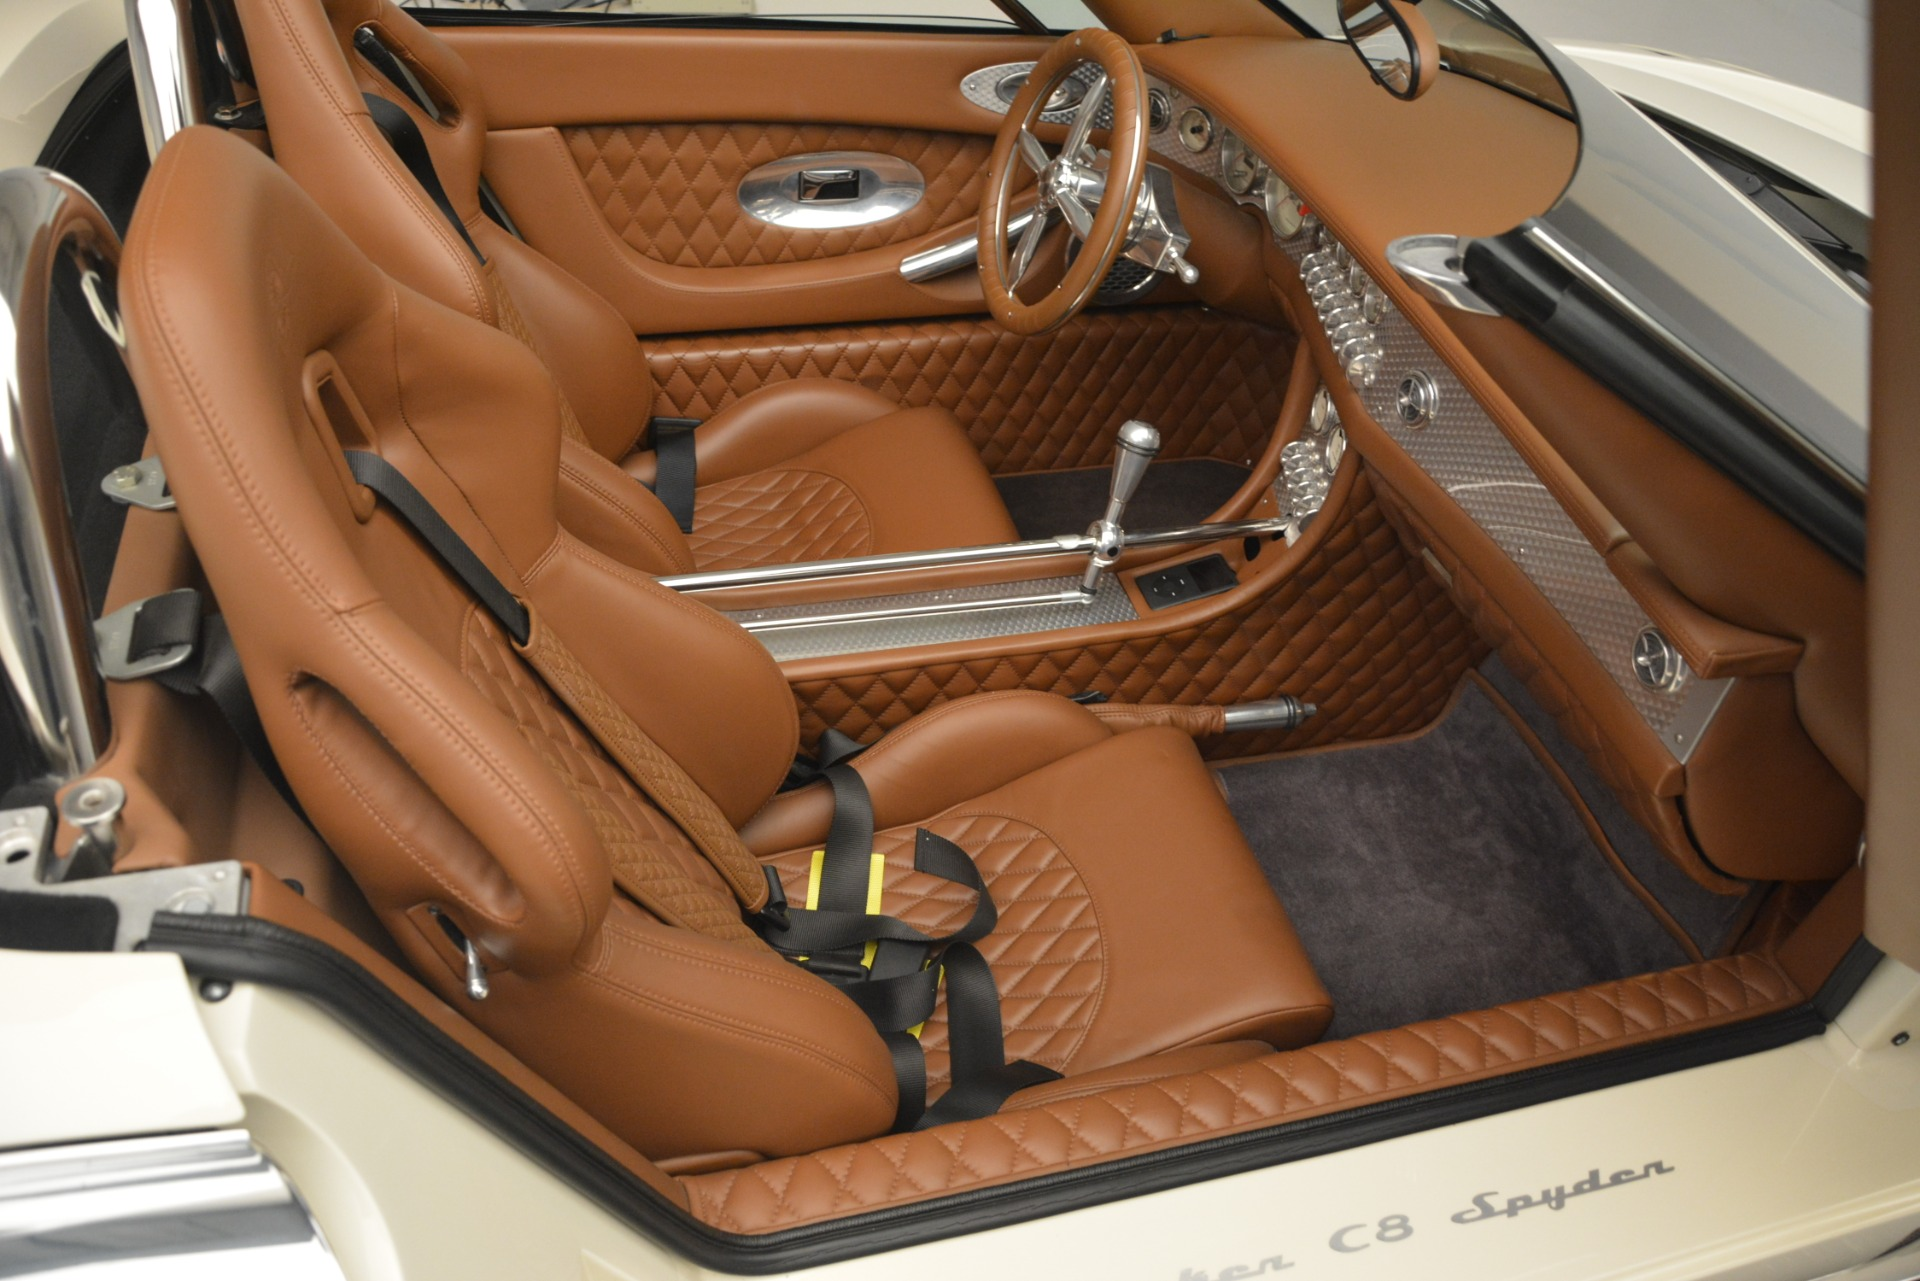 Used 2006 Spyker C8 Spyder  For Sale In Westport, CT 1661_p22